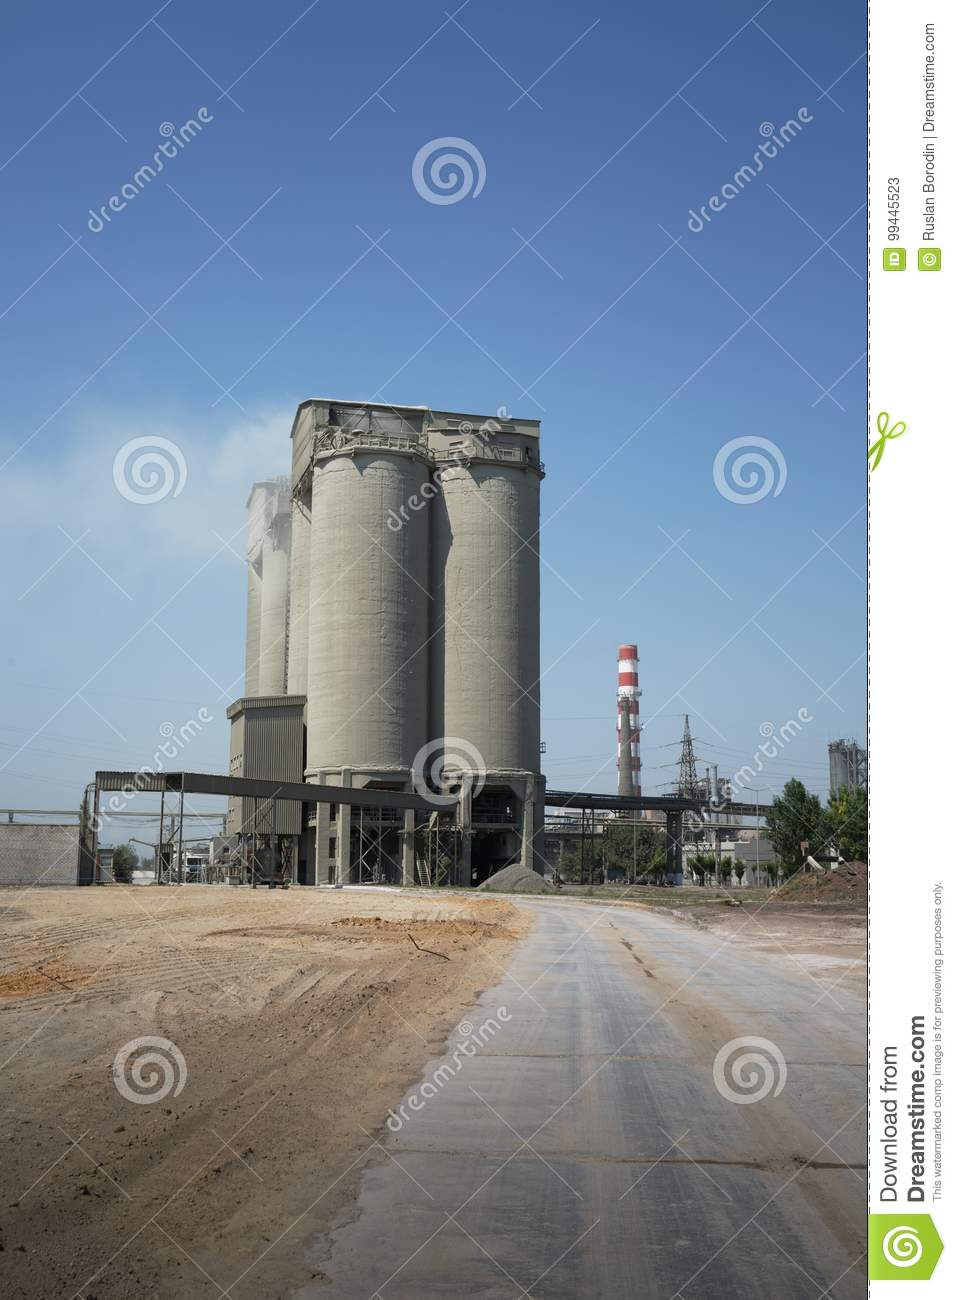 Download Industrial Plant On A Sky Background. A Huge Building And A Smokestack Of A Dairy Factory. Ecology Concept. Copy Space. Stock Image - Image of cheese, industrial: 99445523